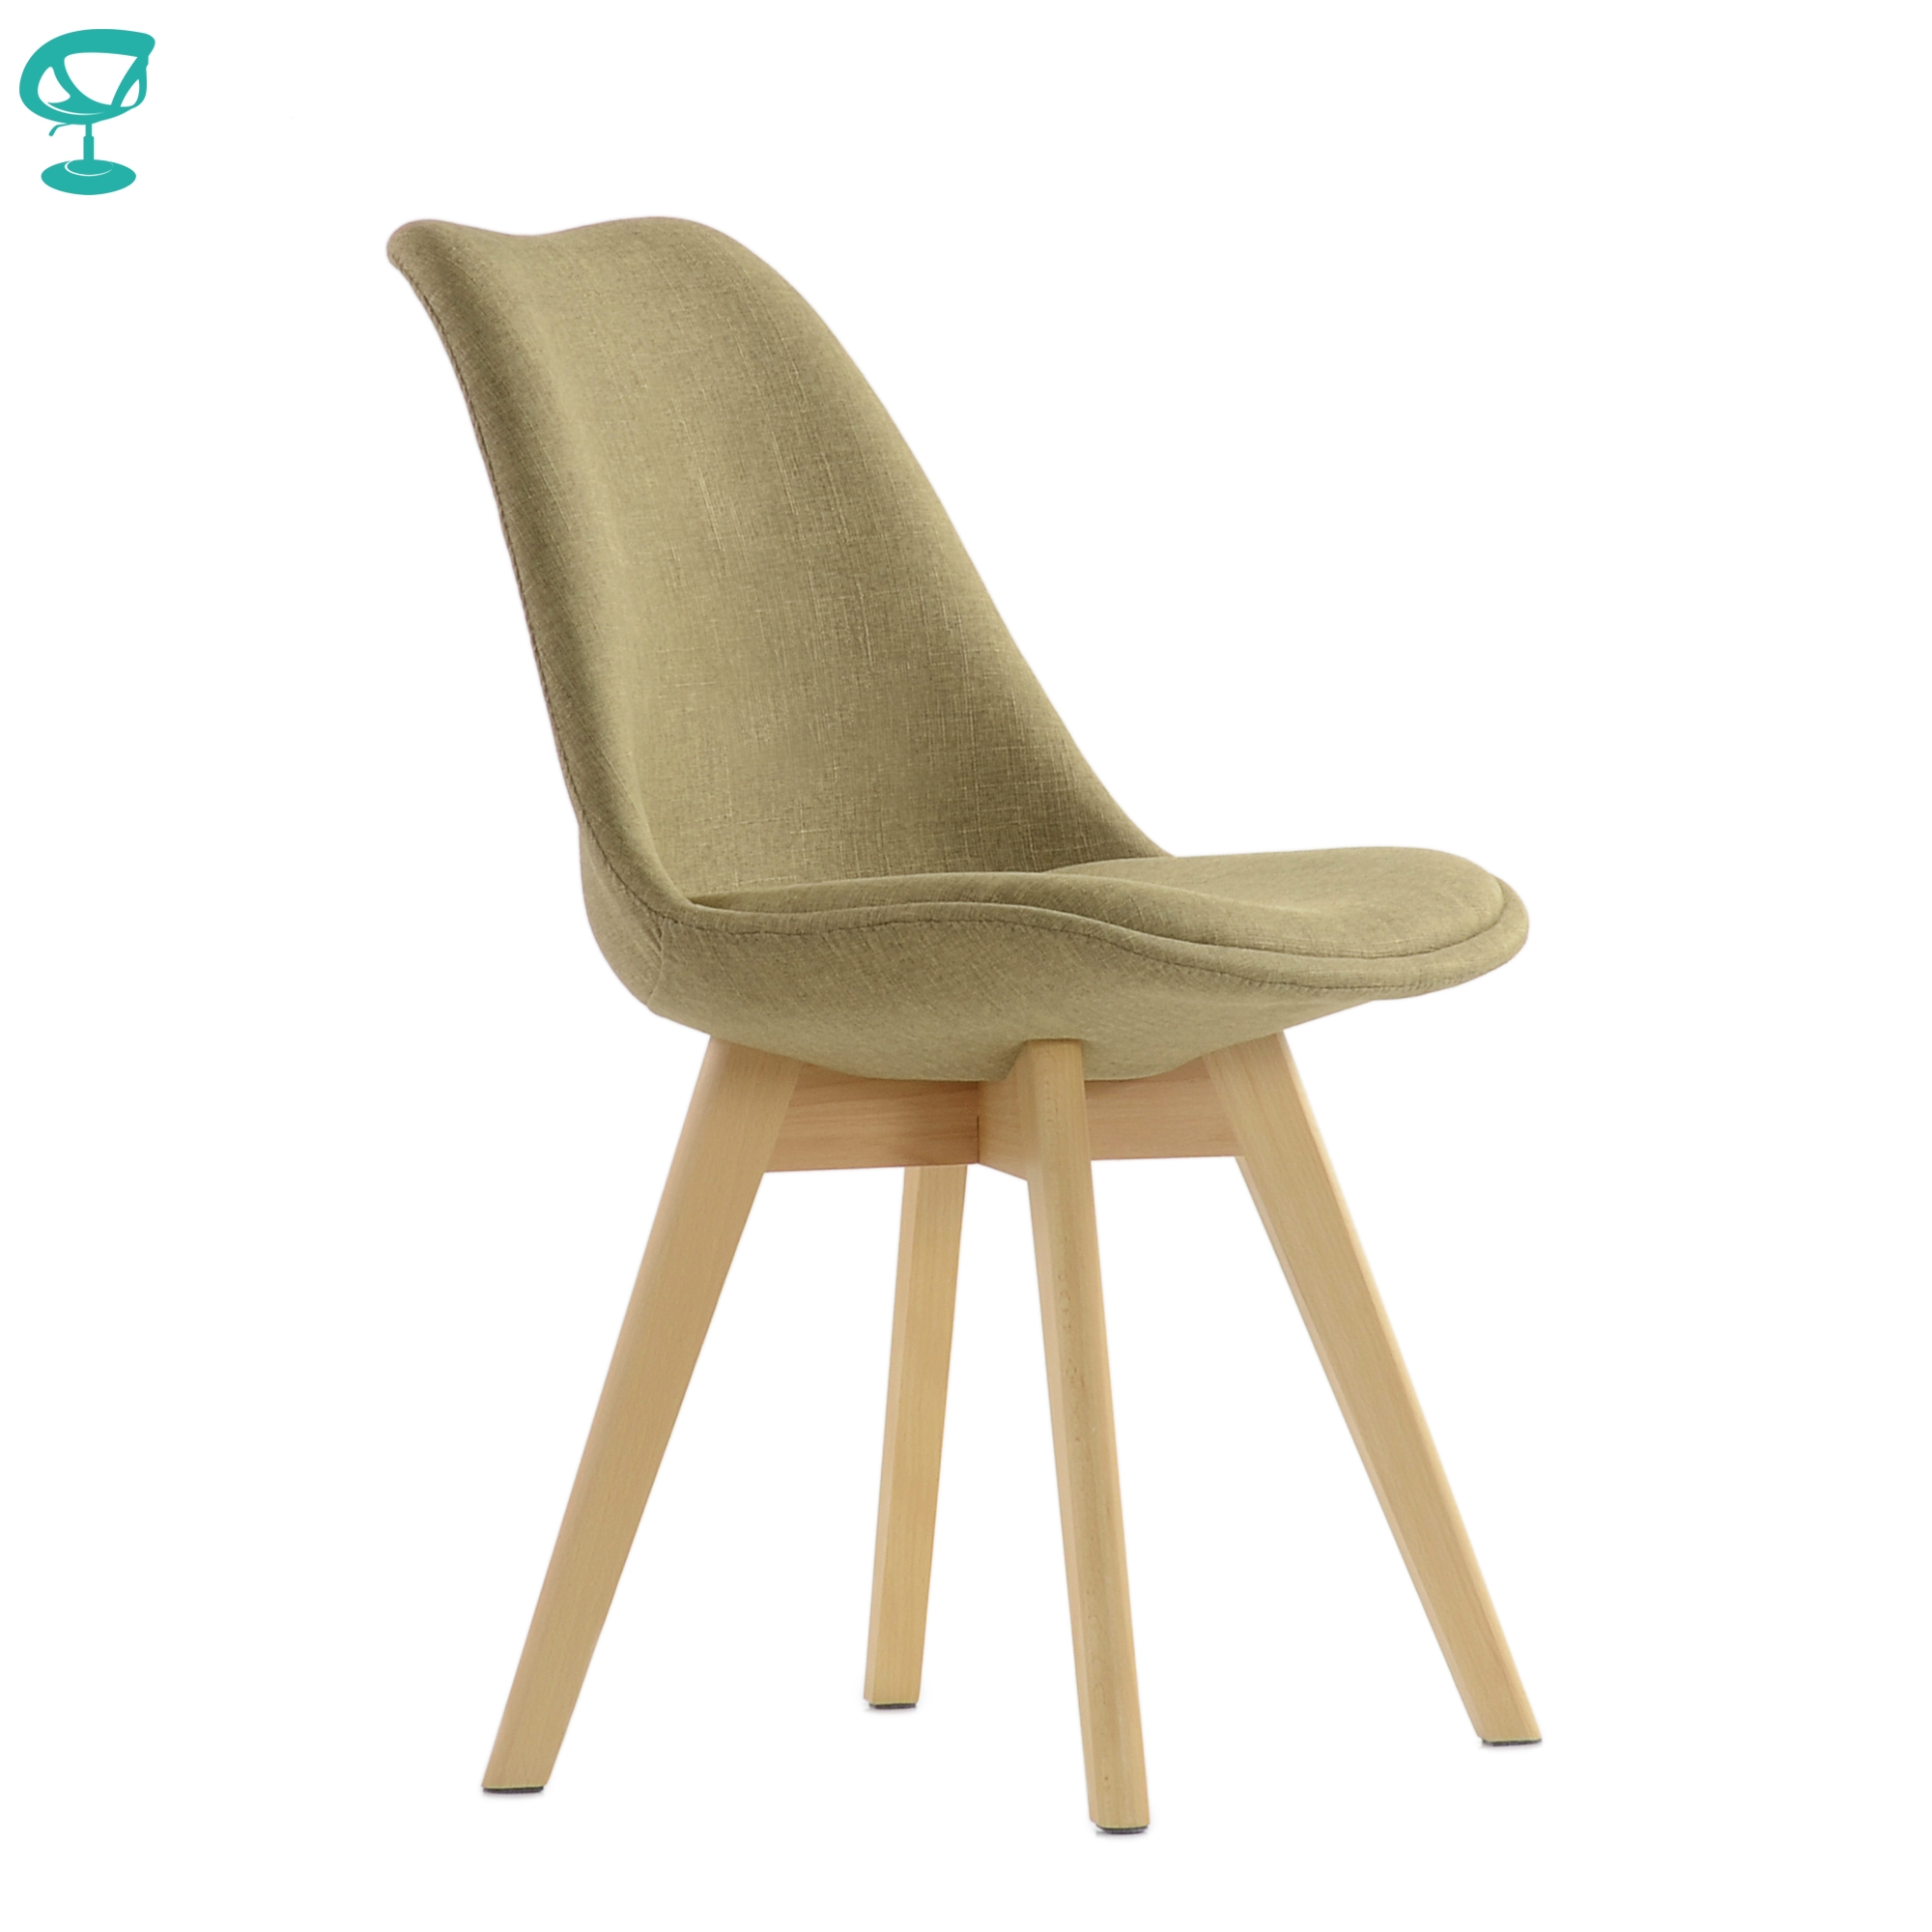 95735 Barneo N-22 Kitchen Chair On Wooden Base Seat Fabric Chair For Living Room Chair Dining Chair Furniture For Kitchen